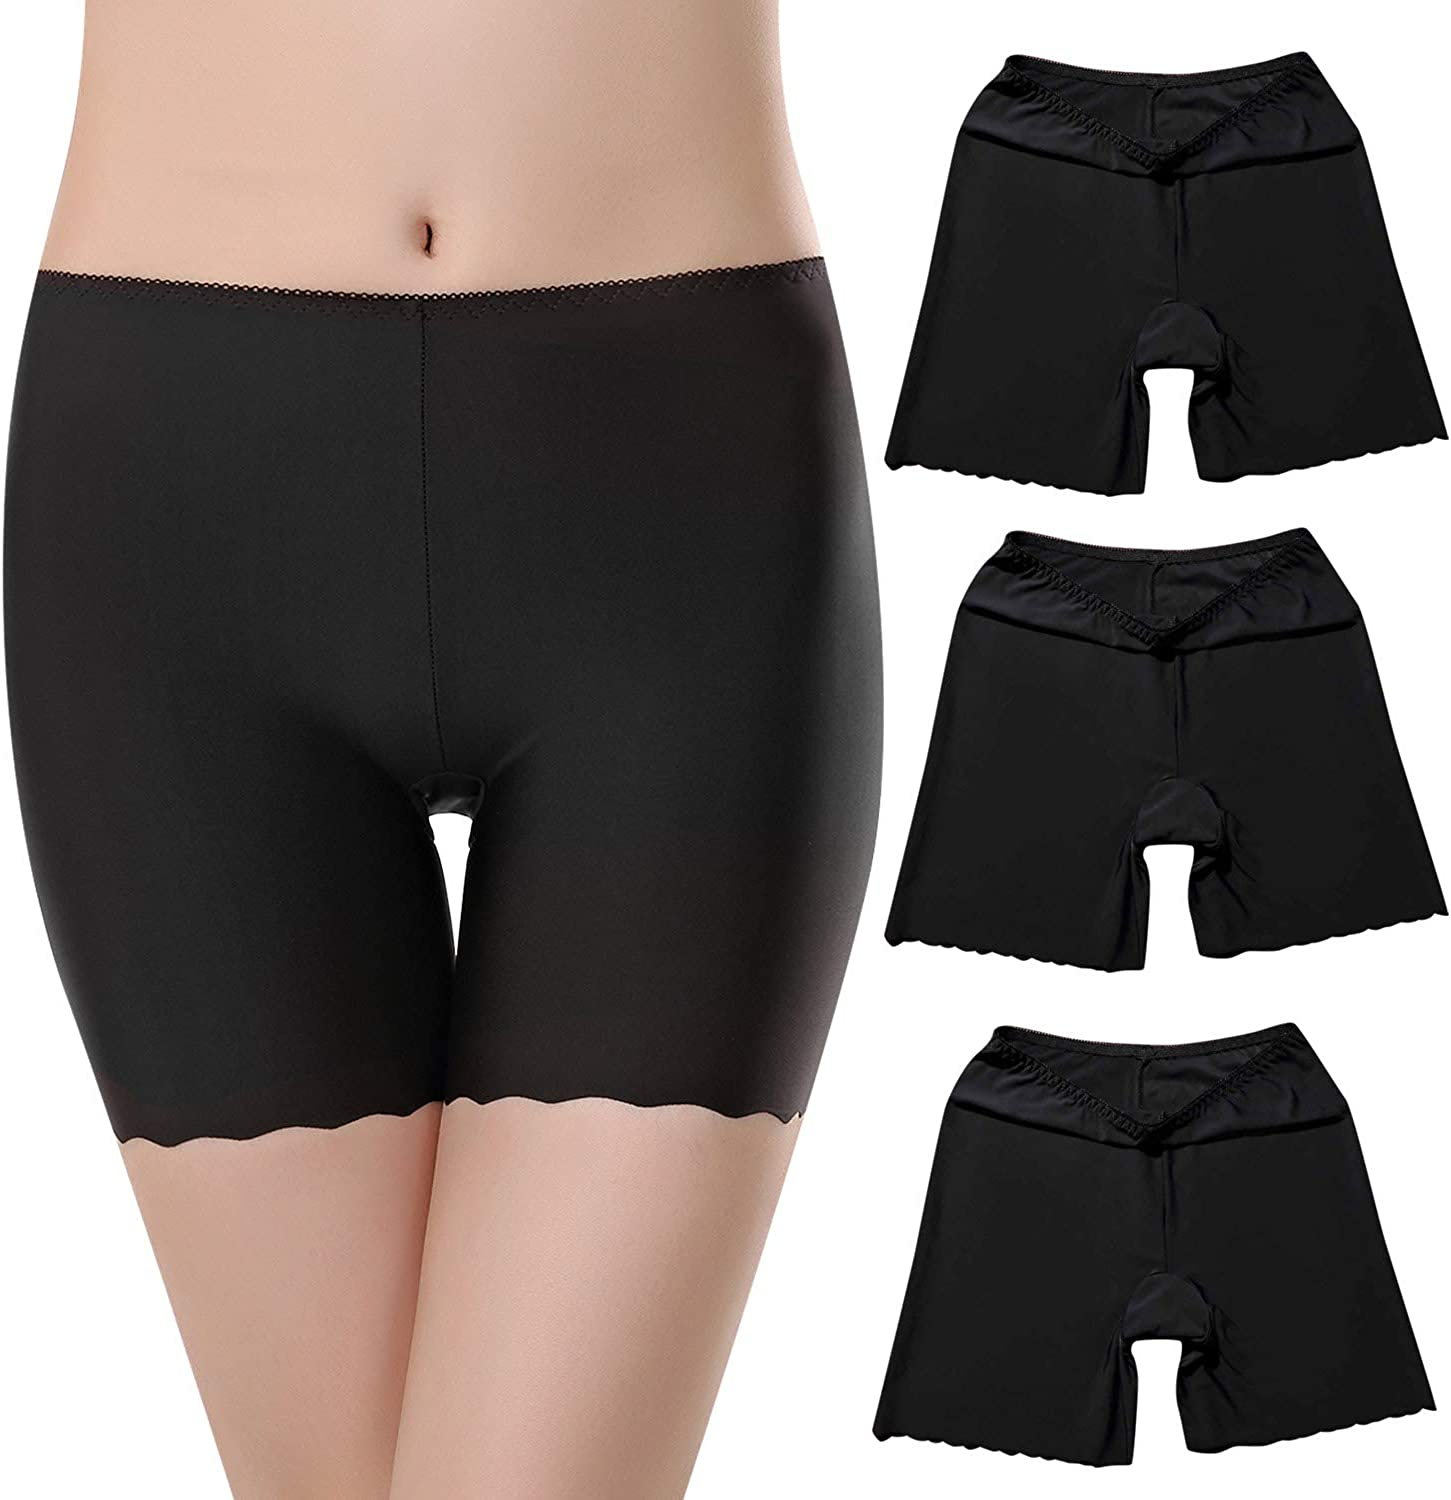 Tuopuda Womens Safety Short Anti Chafing Cotton Shorts Long Leg Knickers Briefs Stretchy Leggings Invisible Boxers Slipshort Panties for Girls 3 Pack